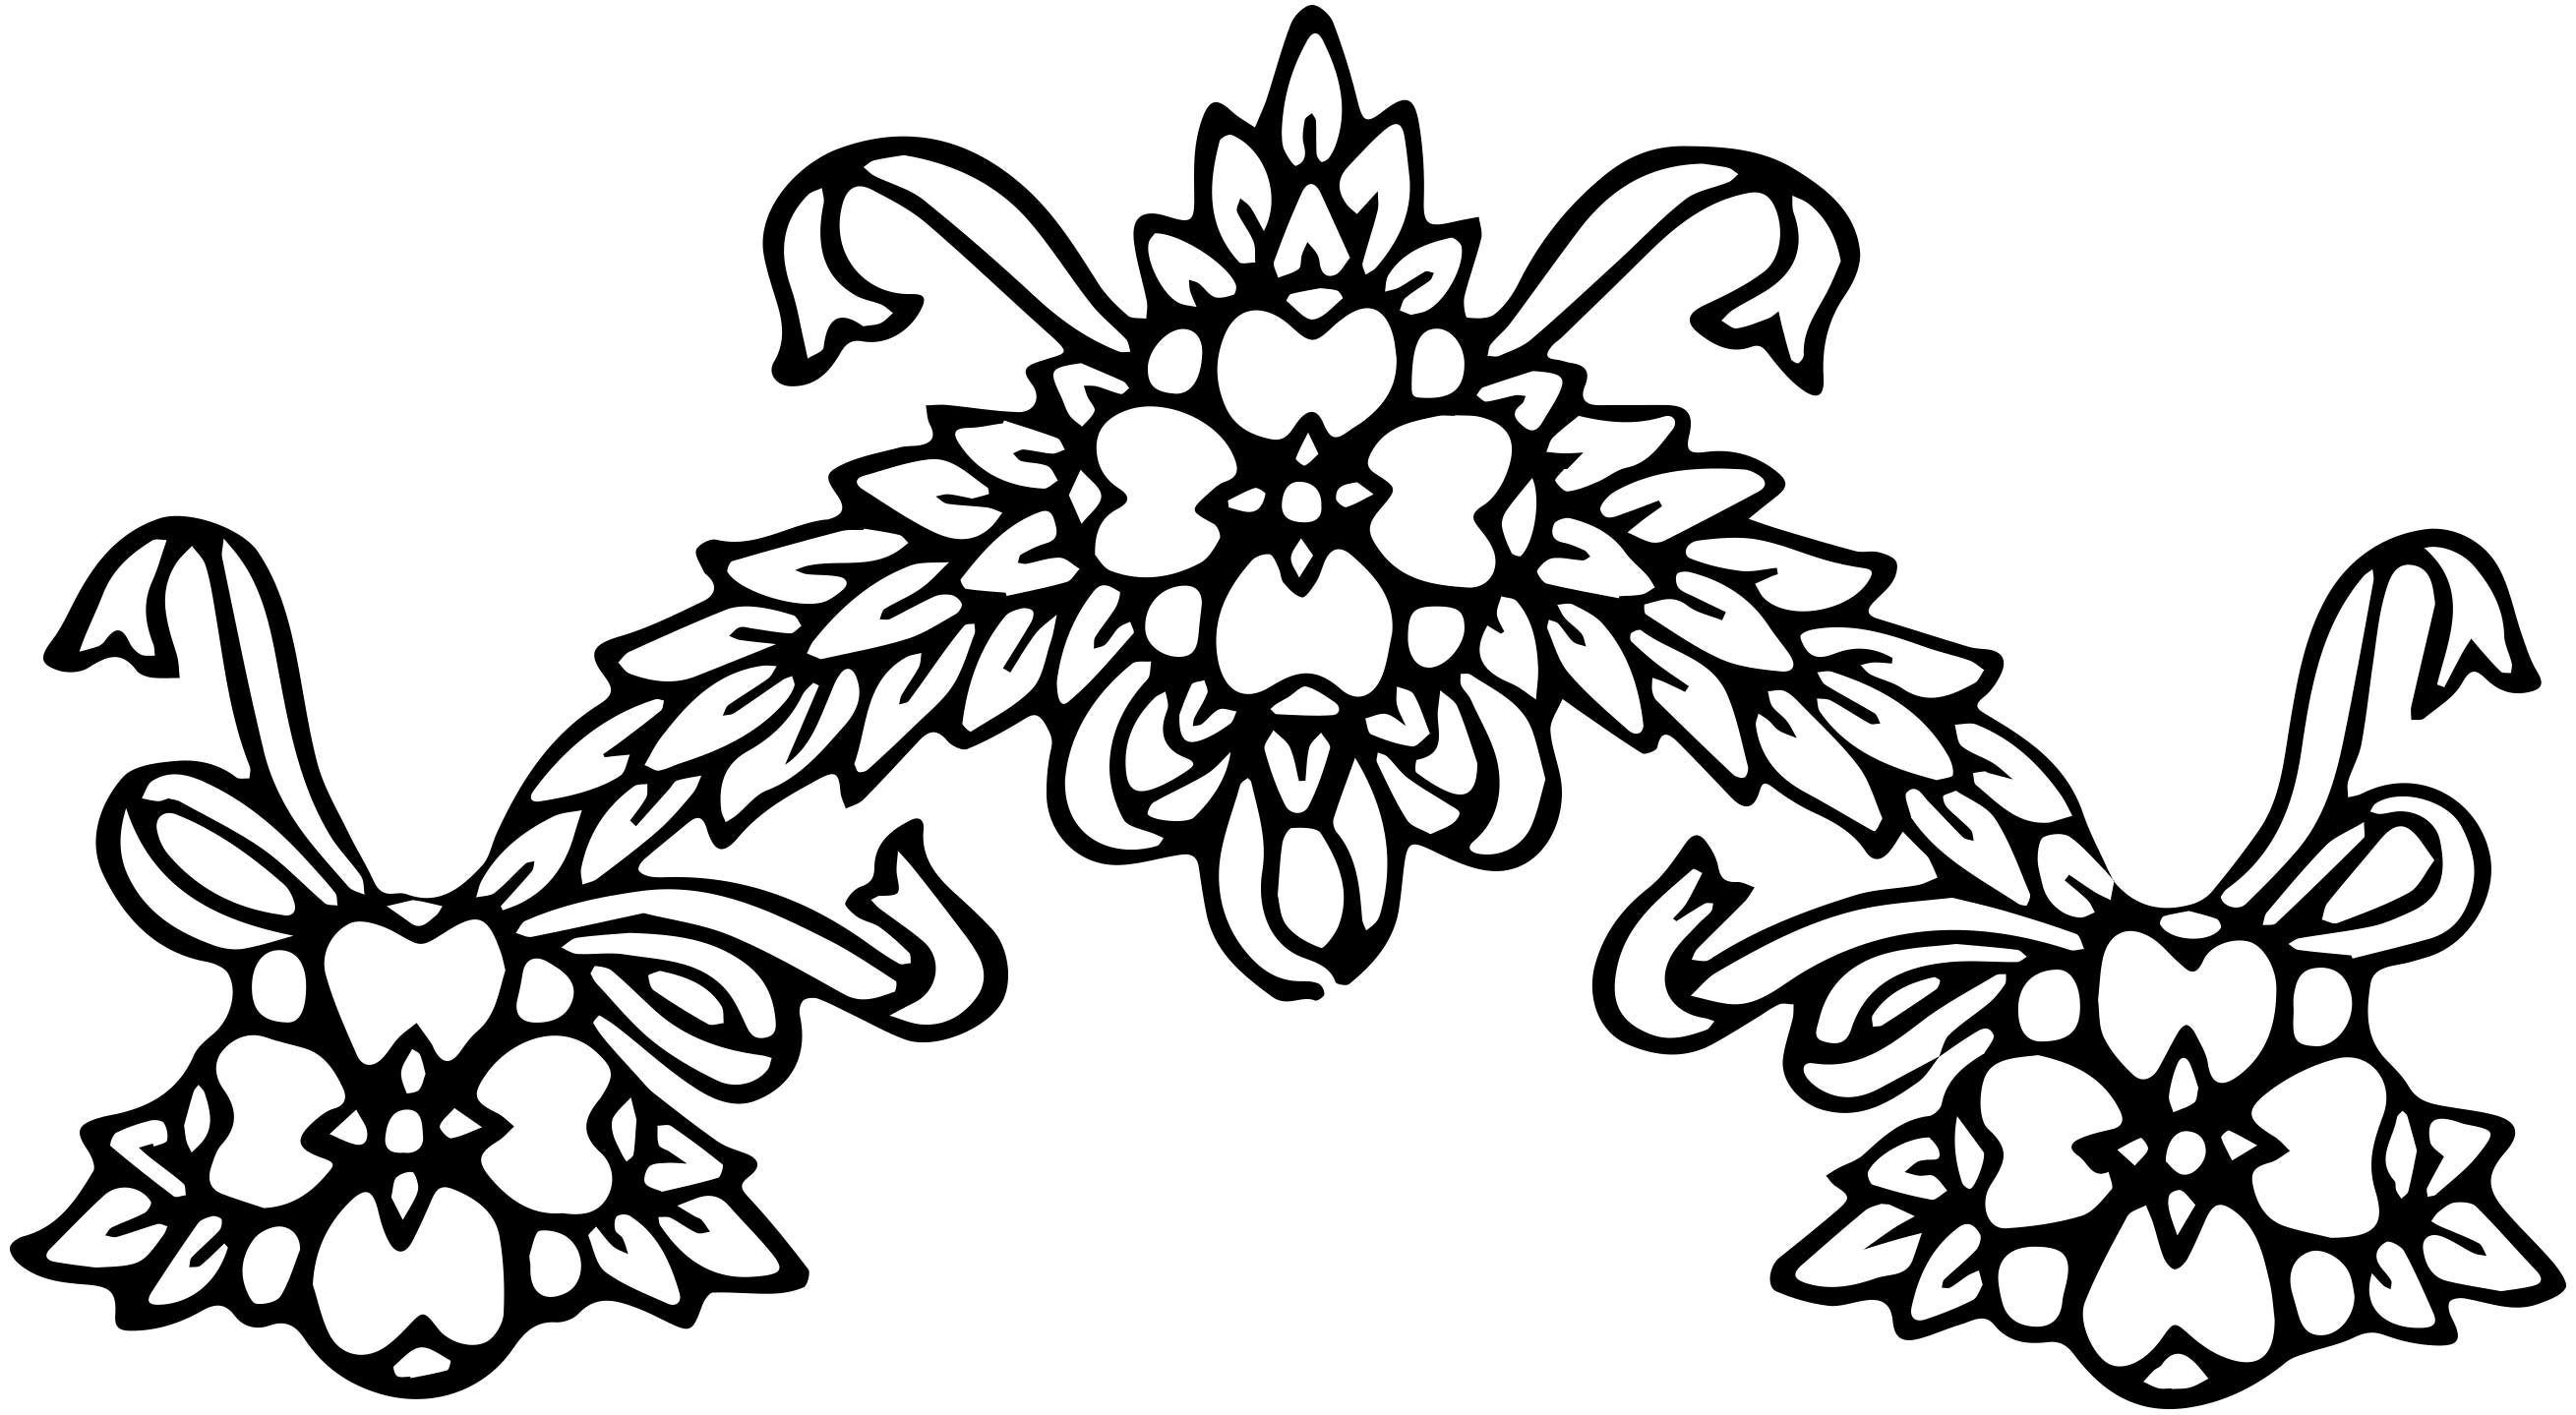 free clipart. line drawings of flowers - photo #42